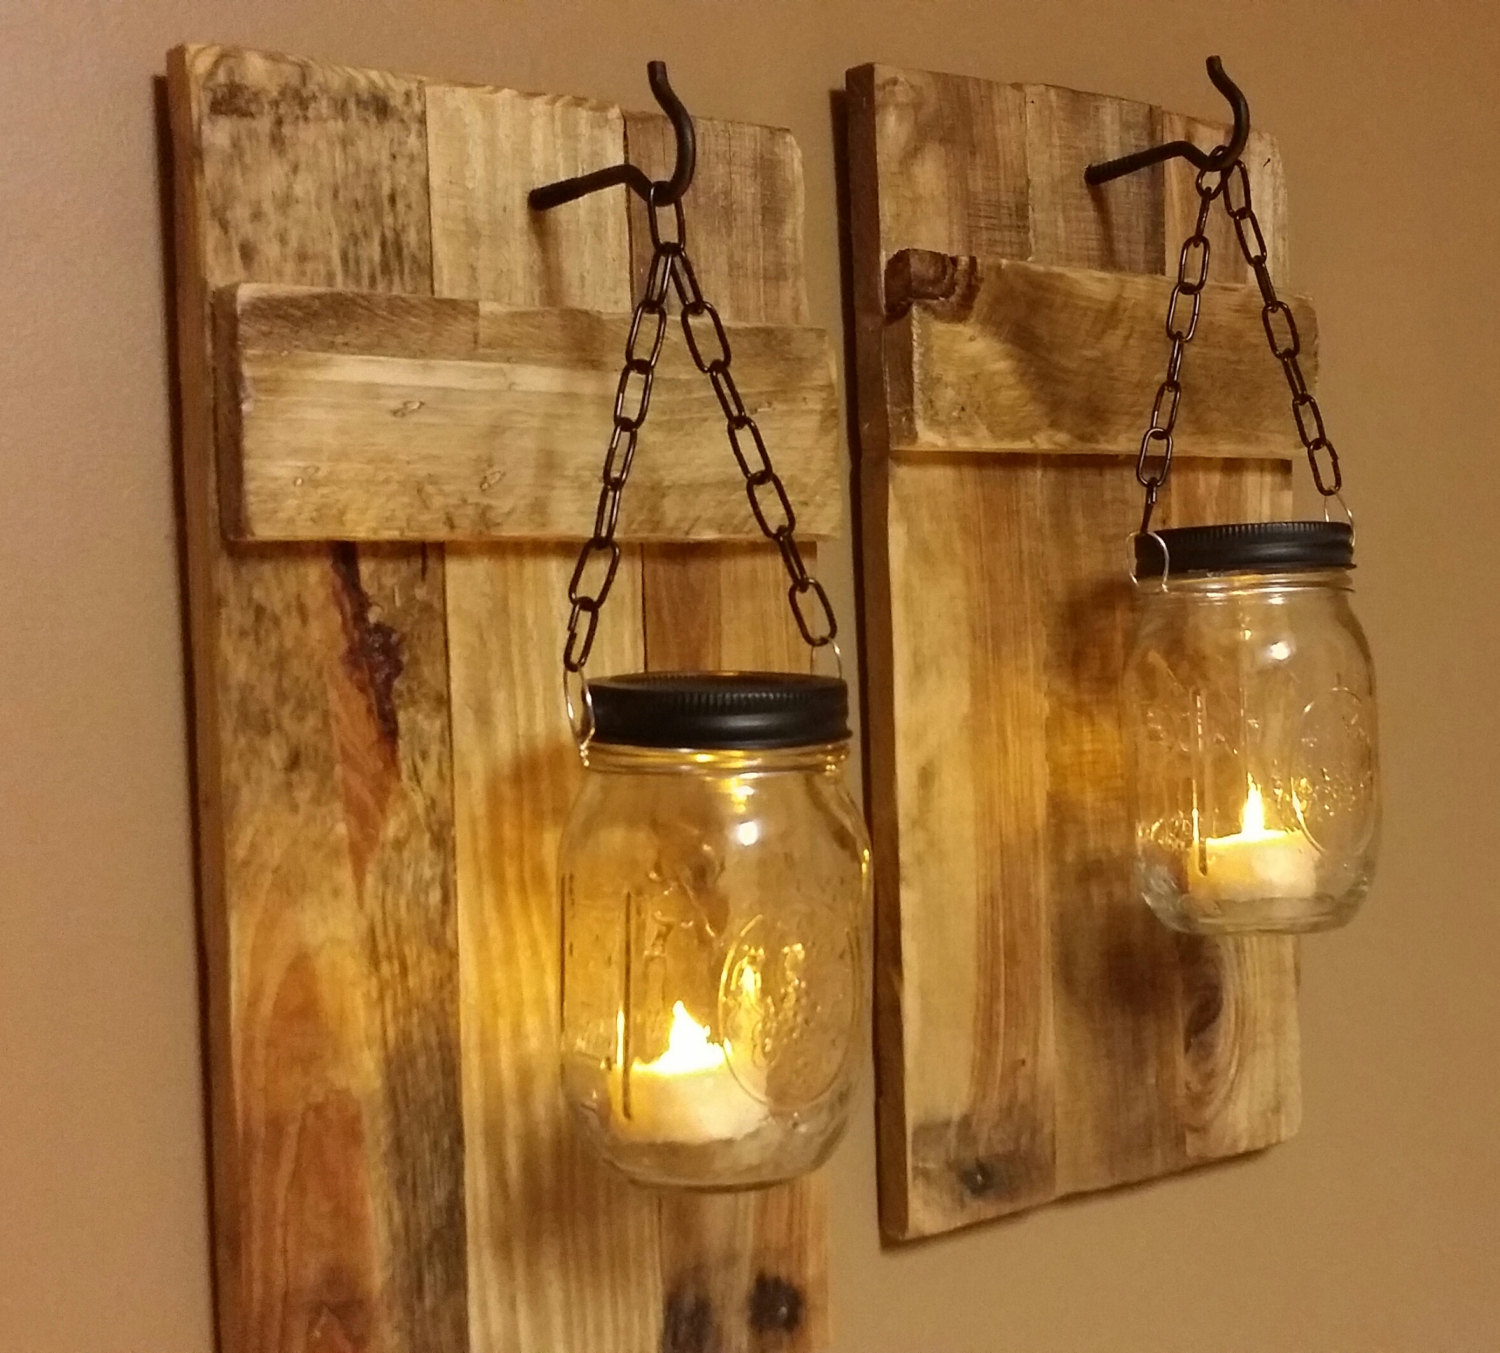 diy mason jar sconce making tutorial mason jar crafts. Black Bedroom Furniture Sets. Home Design Ideas